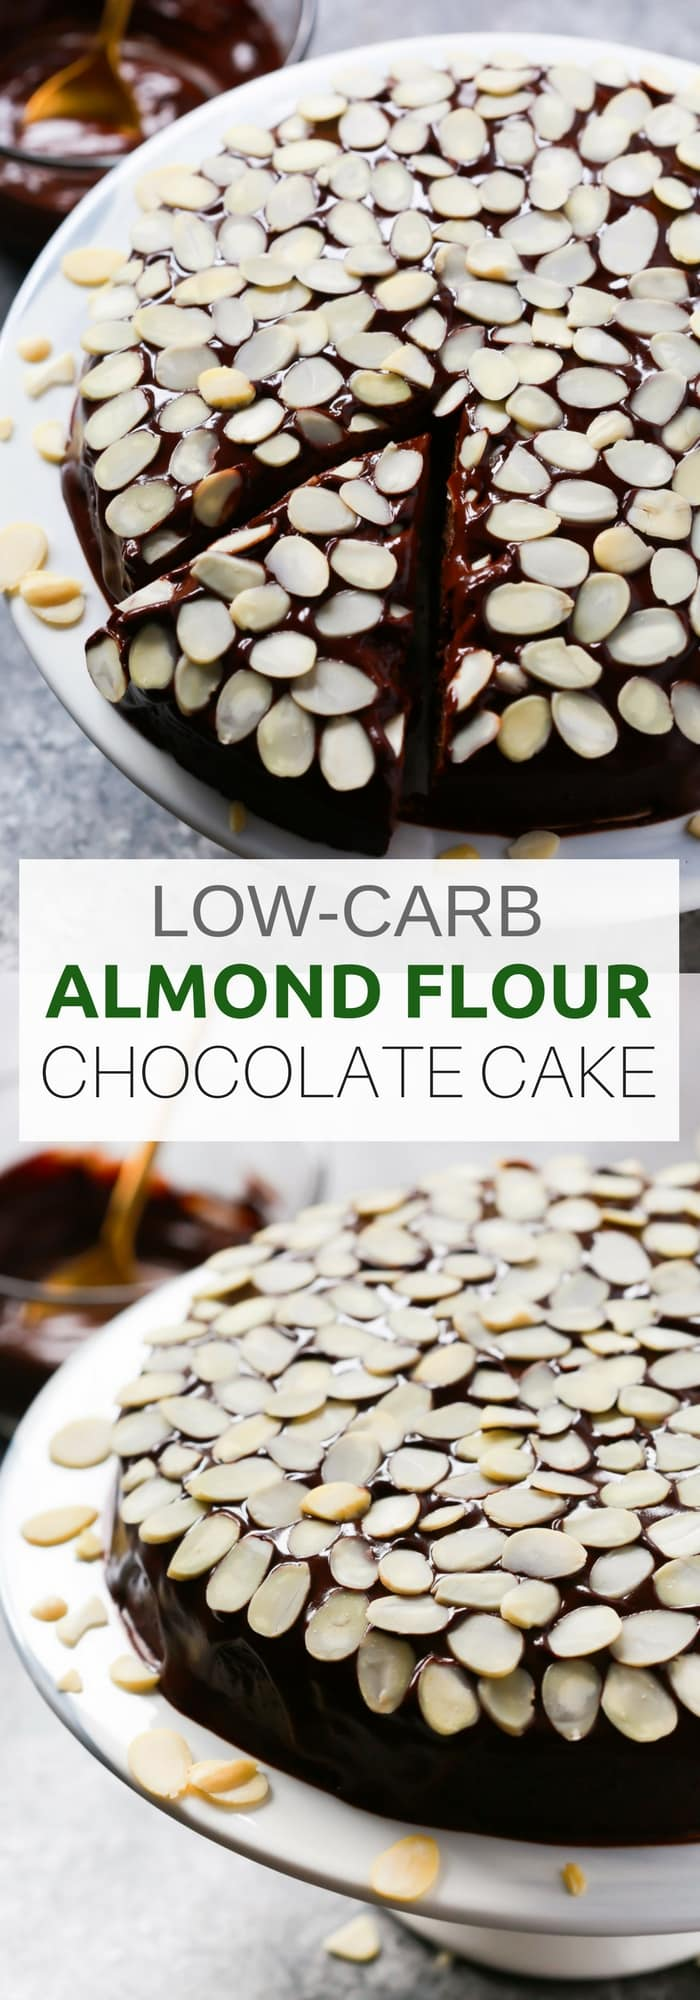 Healthier Low-carb Almond Flour Chocolate Cake for the Holidays! It's made with almond flour, eggs, natural sweetener, cocoa power and lots of toasted natural sliced almonds. This cake is gluten-free too. Enjoy!